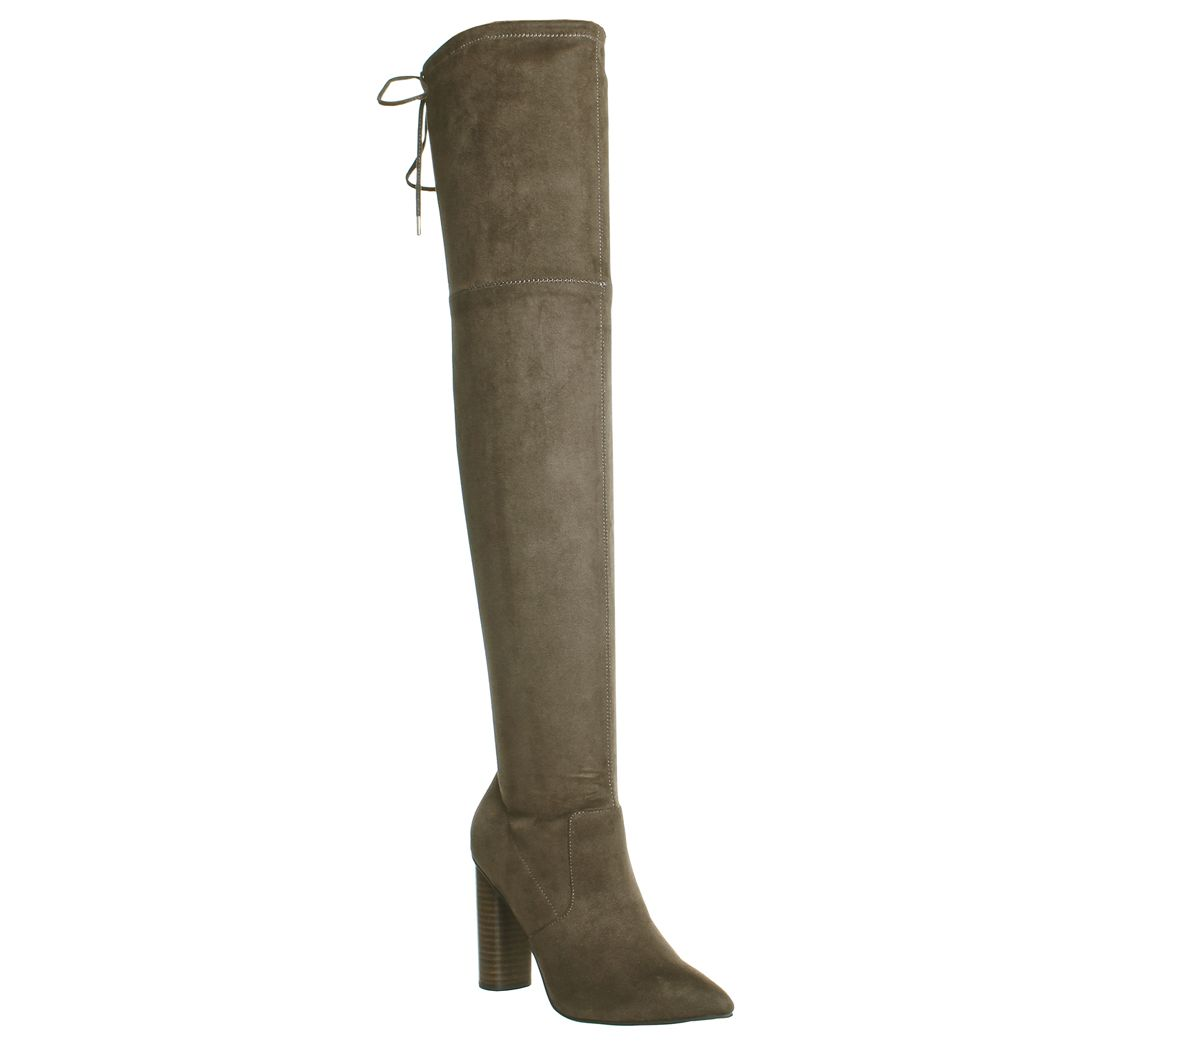 a9f2cf20944 Office Kandy Shop Over The Knee Boots Khaki - Knee Boots